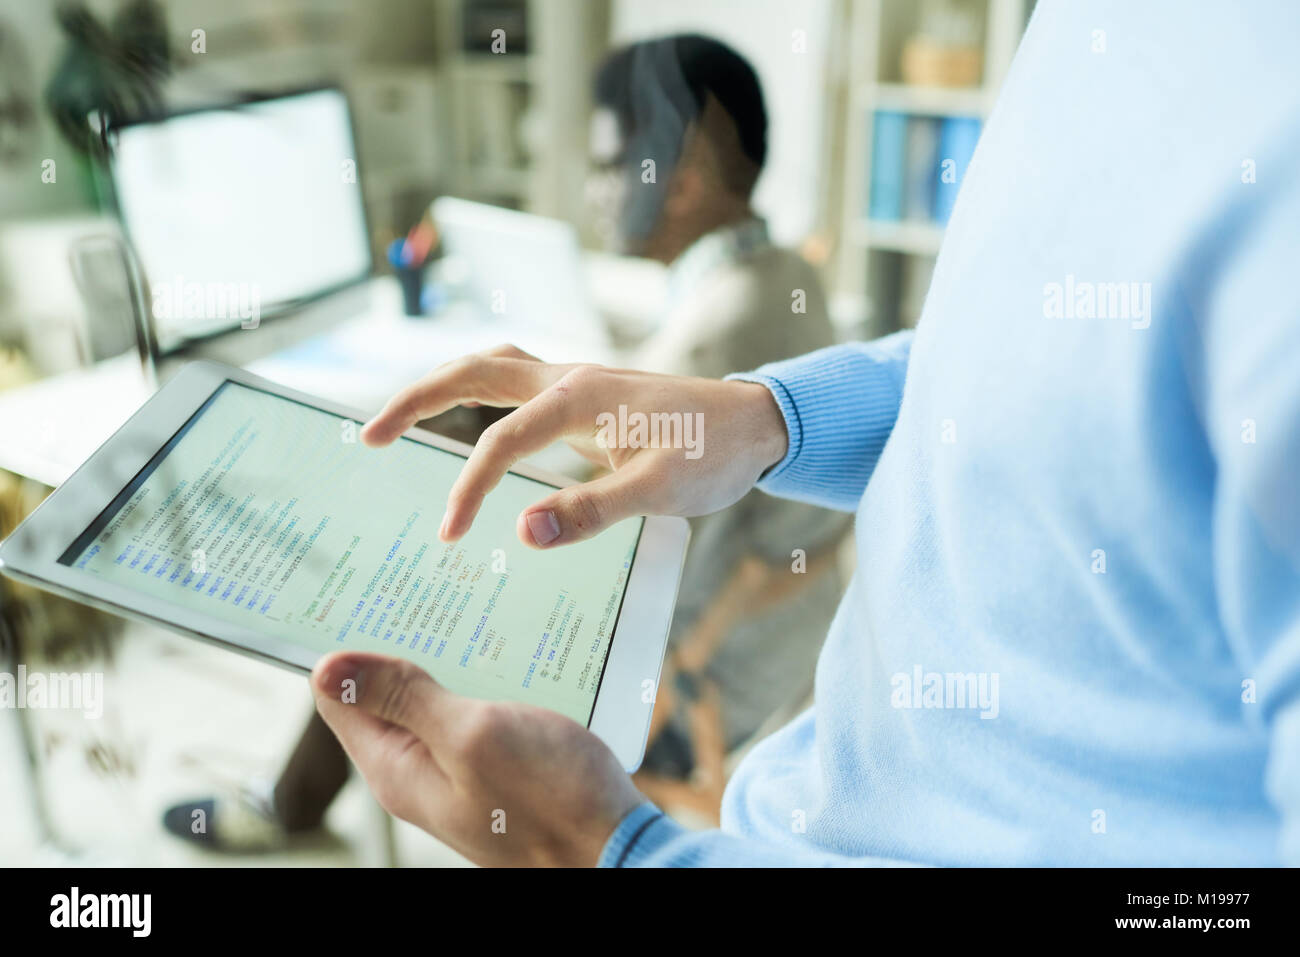 Web Developer Checking Code - Stock Image